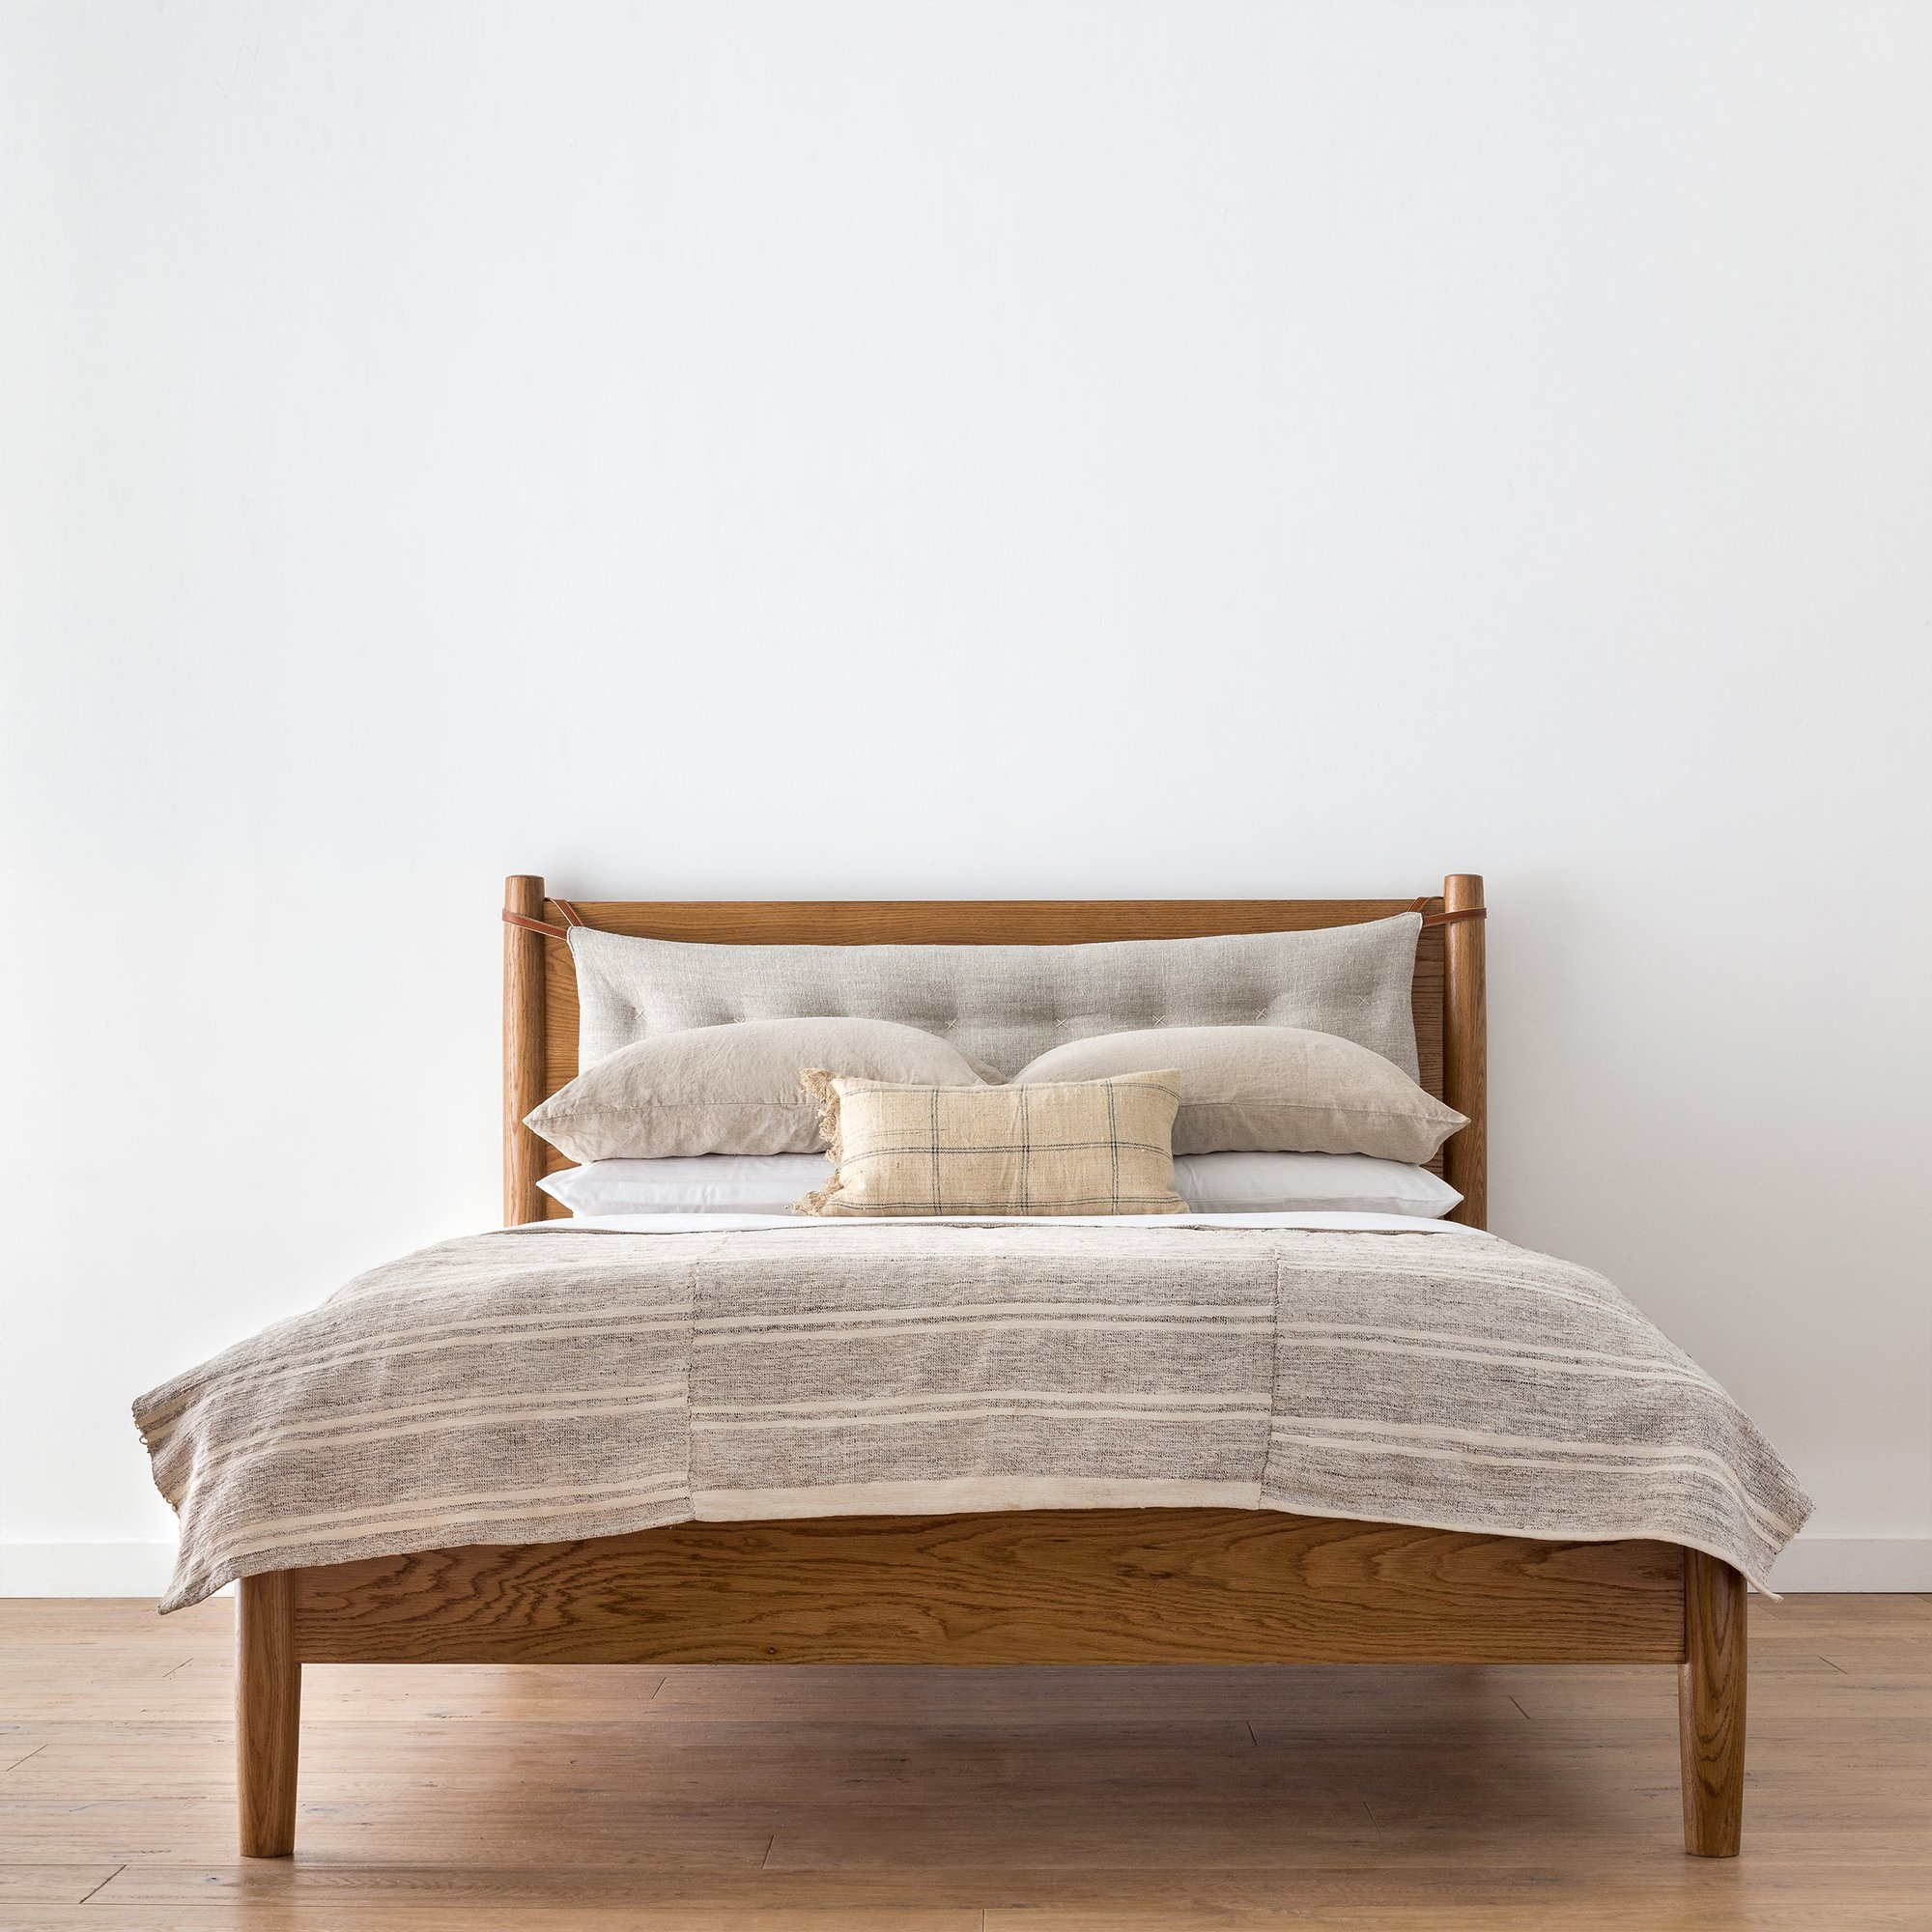 ALL-SORTS-OF-SHOPPE-PENNY-BED